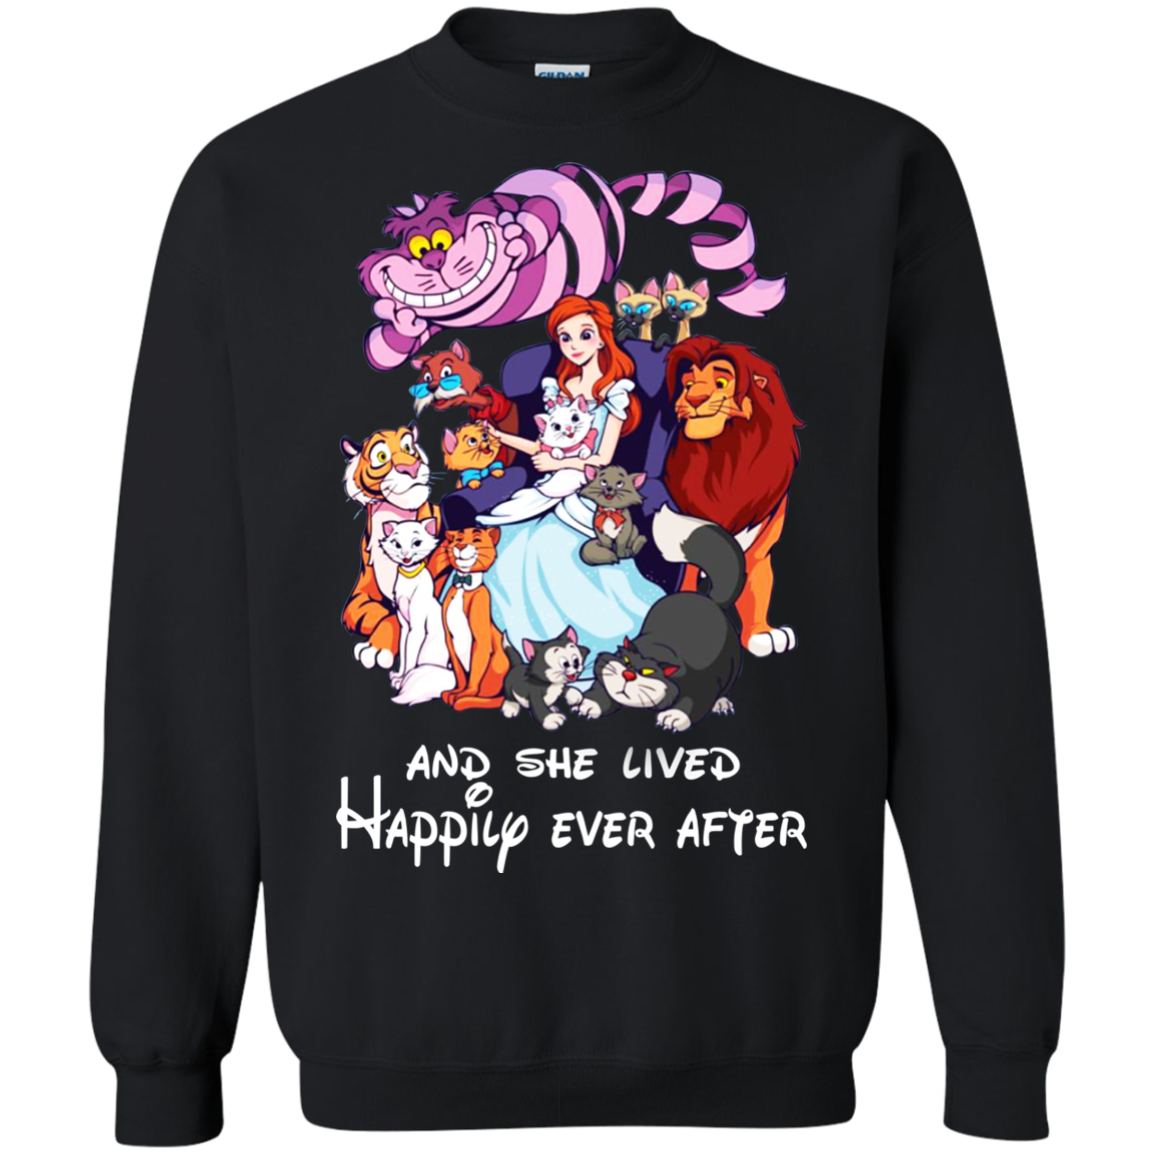 Disney And She Lived Happily Ever After T Shirt